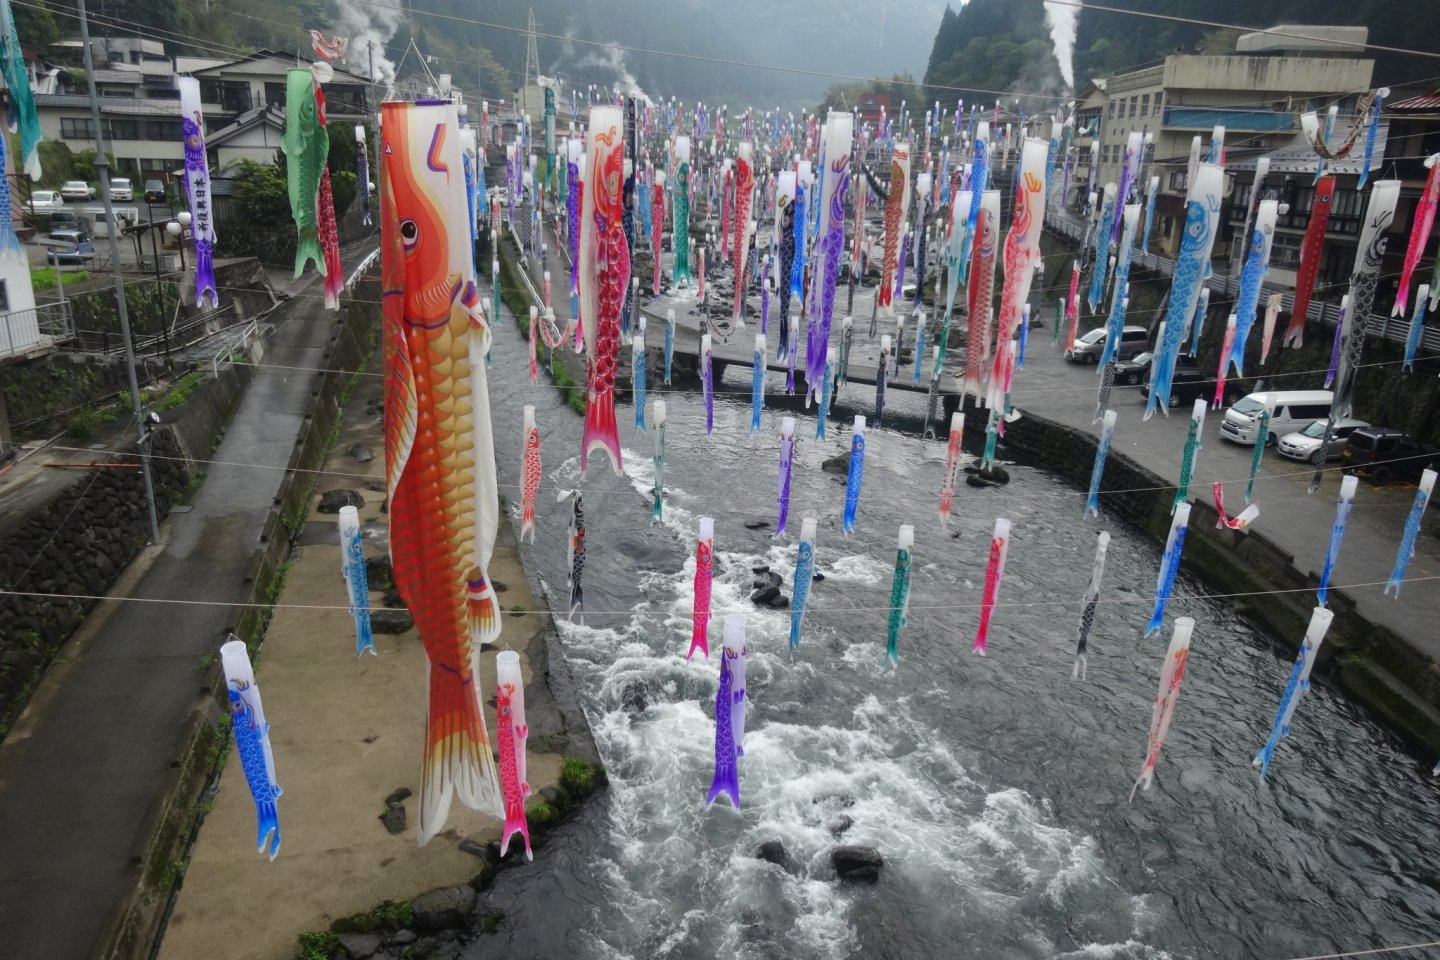 Carp streamers above the river in Tsuetate Onsen